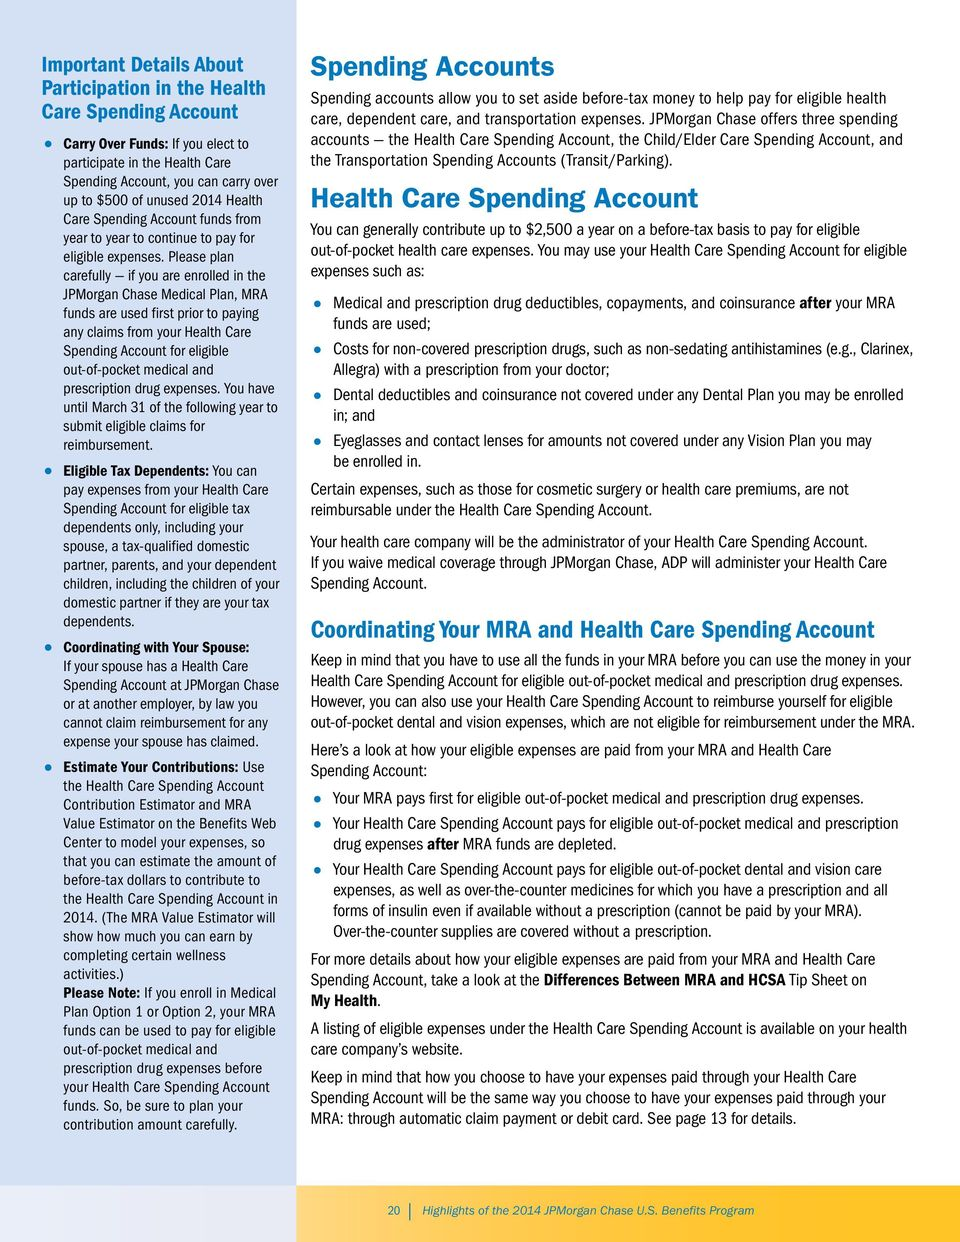 Please plan carefully if you are enrolled in the JPMorgan Chase Medical Plan, MRA funds are used first prior to paying any claims from your Health Care Spending Account for eligible out-of-pocket